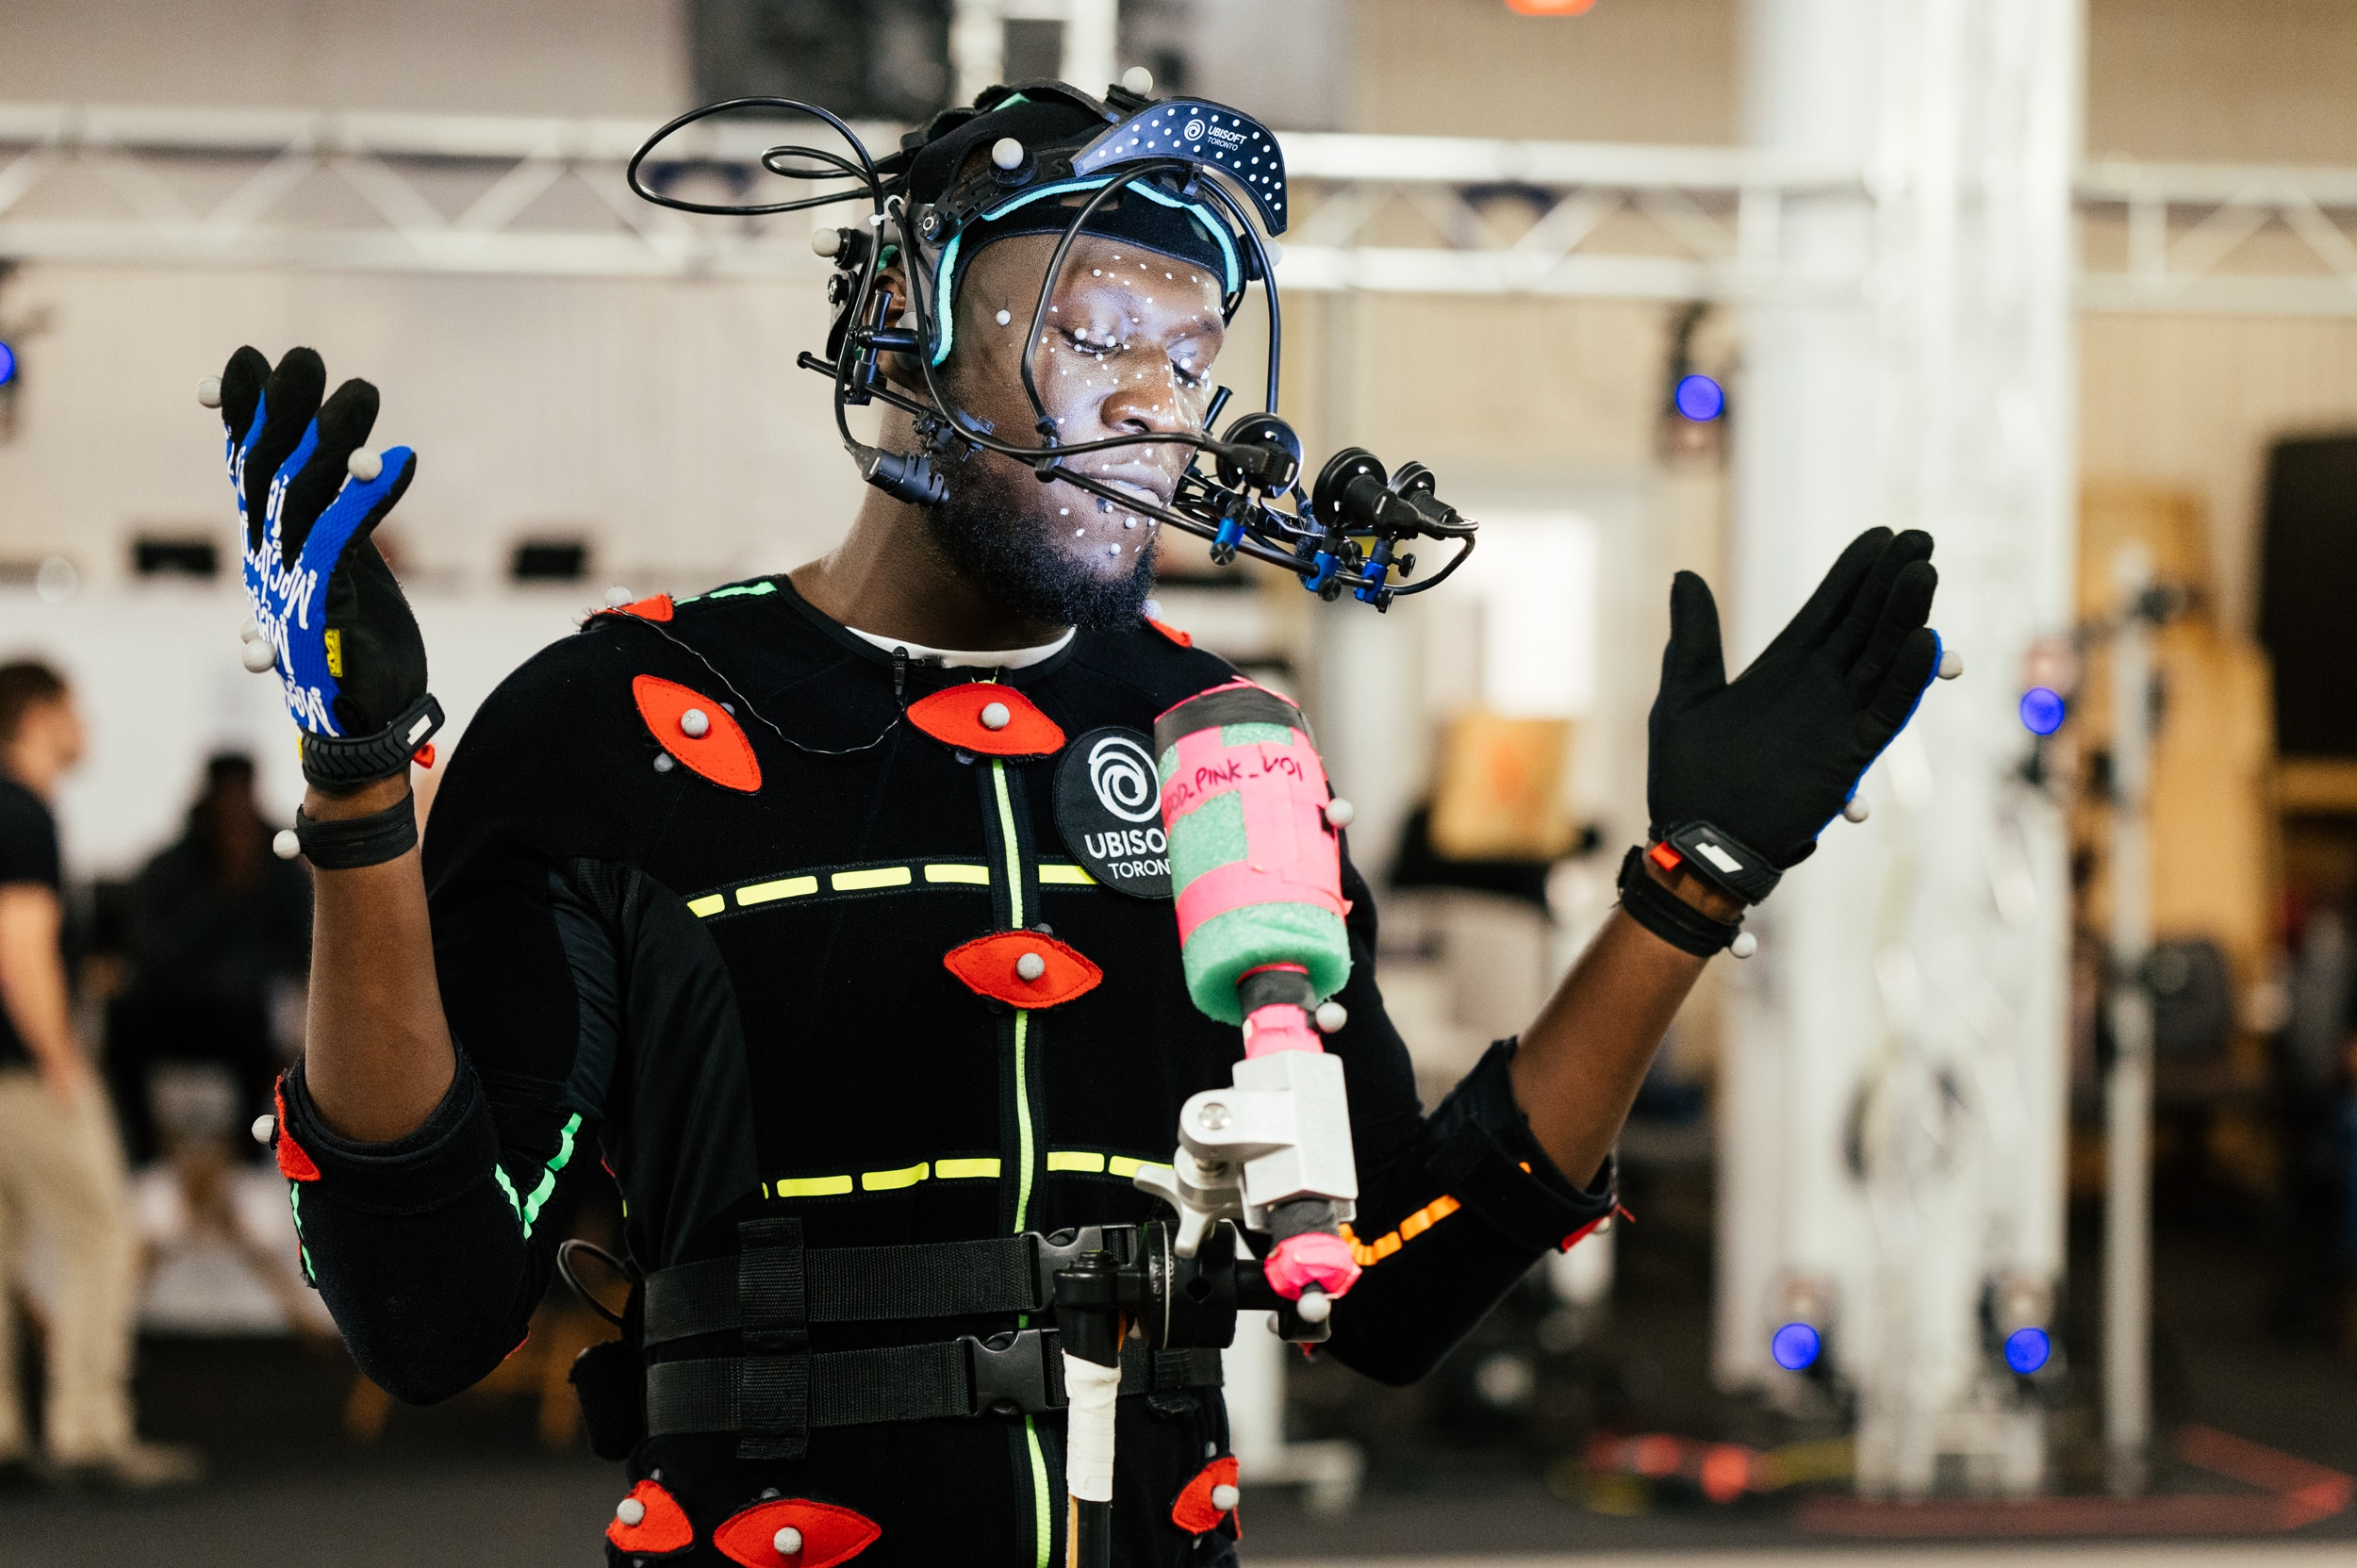 [UN][News] Watch Dogs: Legion – Stormzy Joins The Resistance and Debuts New Music Video - MOCAP 2500x1663